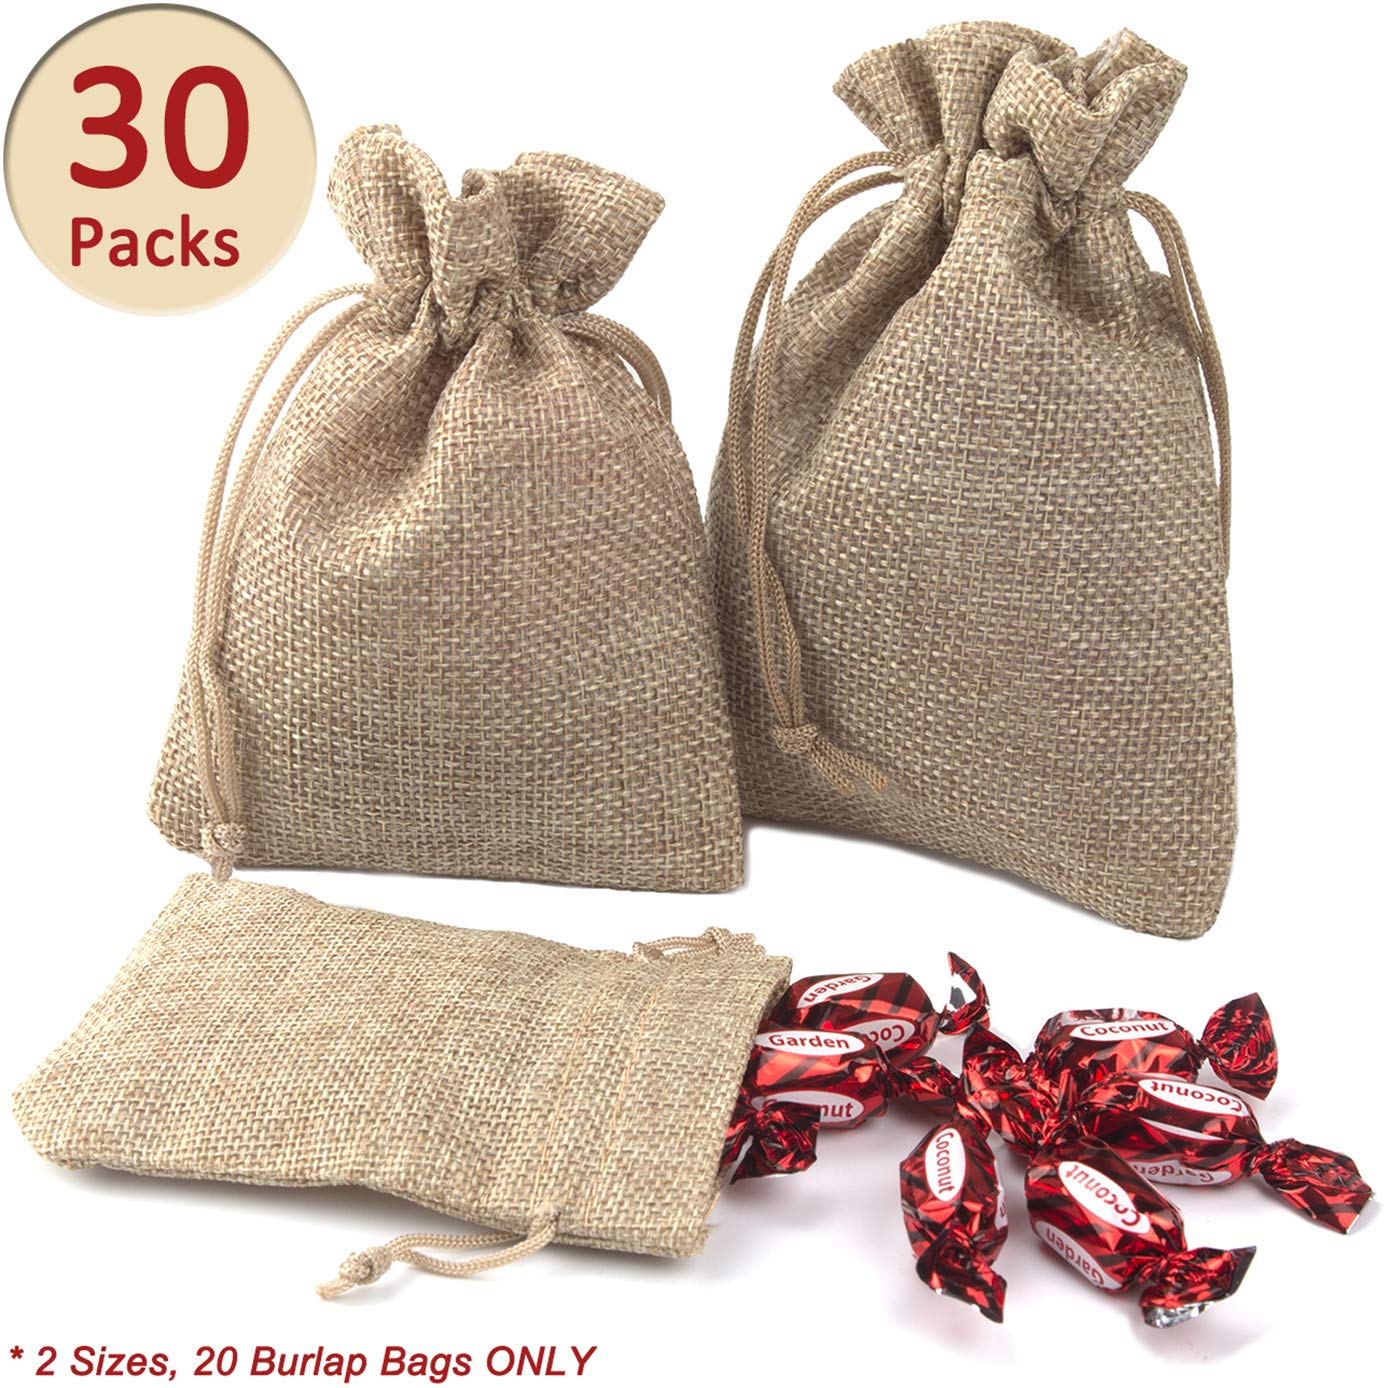 ADVcer Burlap Bags with Drawstring Set, 4.8 x 3.5 and 5.5 x 4, Sacks 30 for Small Favor, Gift, Treat, Goodie, Party, Jewelry, Little Sachet, Coffee Bean, Mini Decor, Craft, Candy, Tea Storage (Linen)